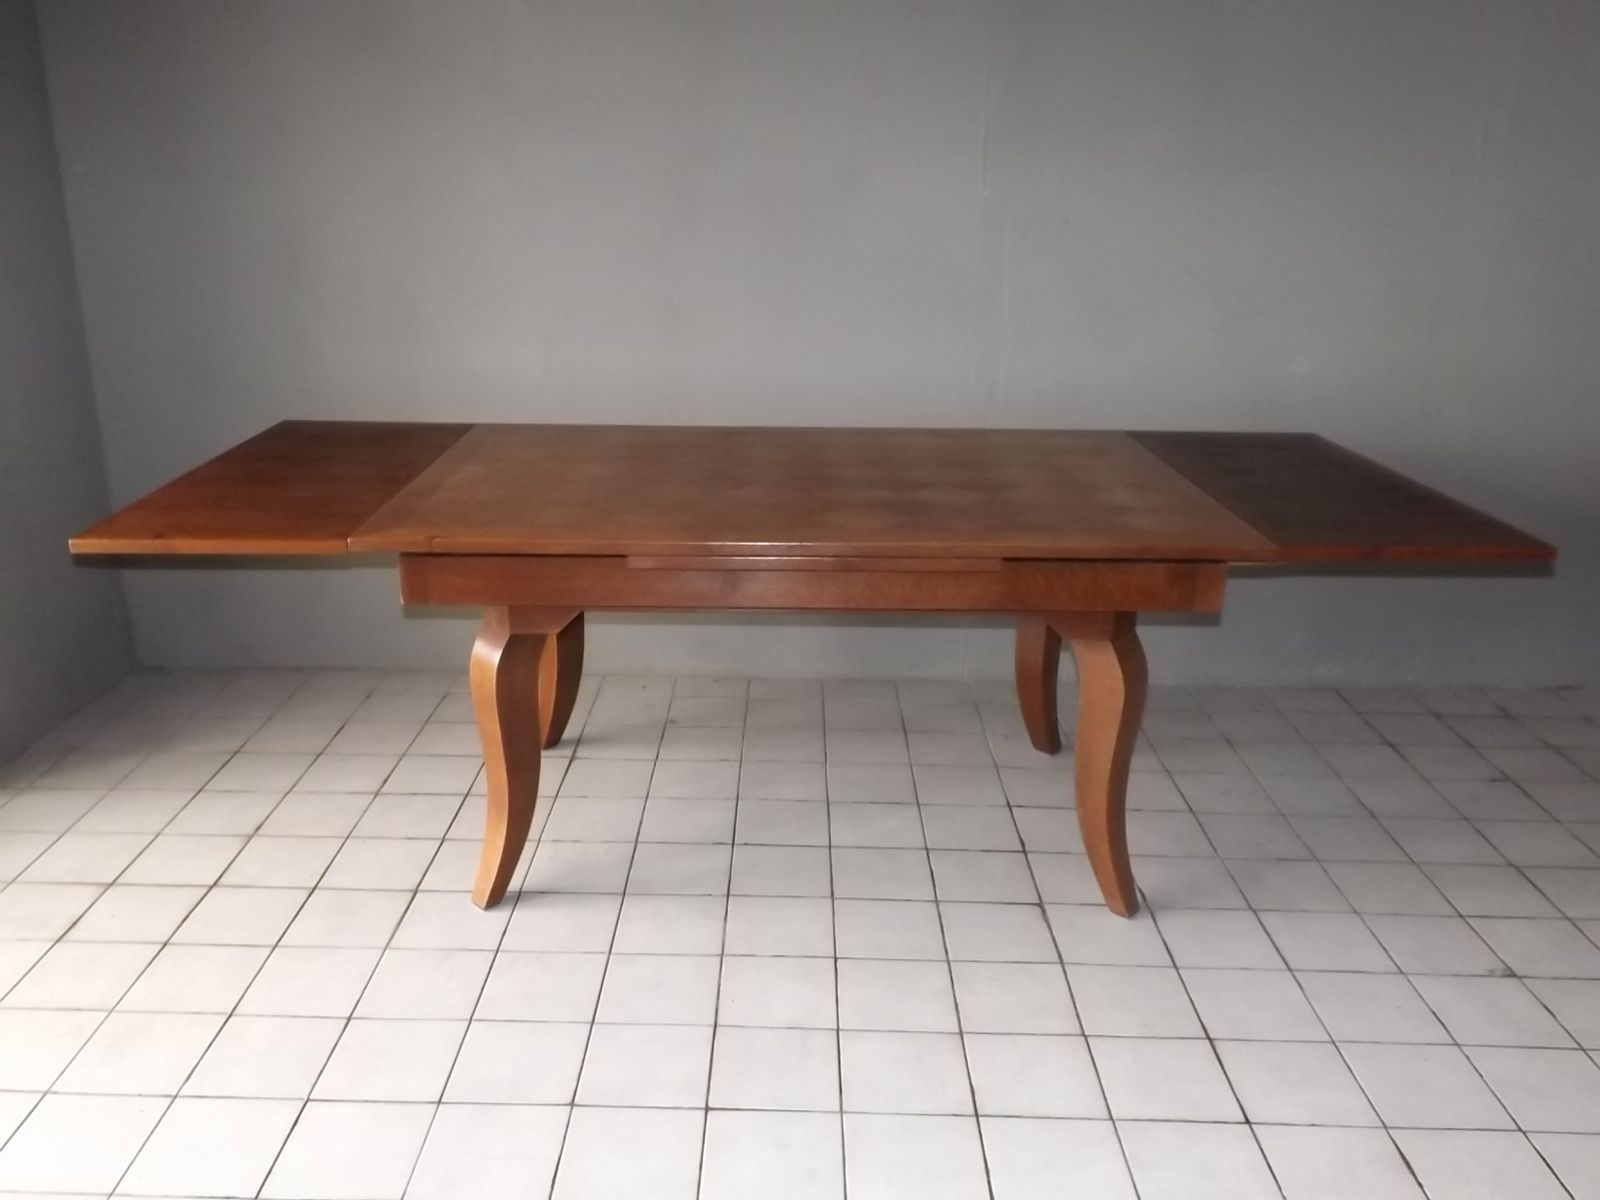 Oak art deco table by gaston poisson 1940s for sale at pamono for 1 oak nyc table prices